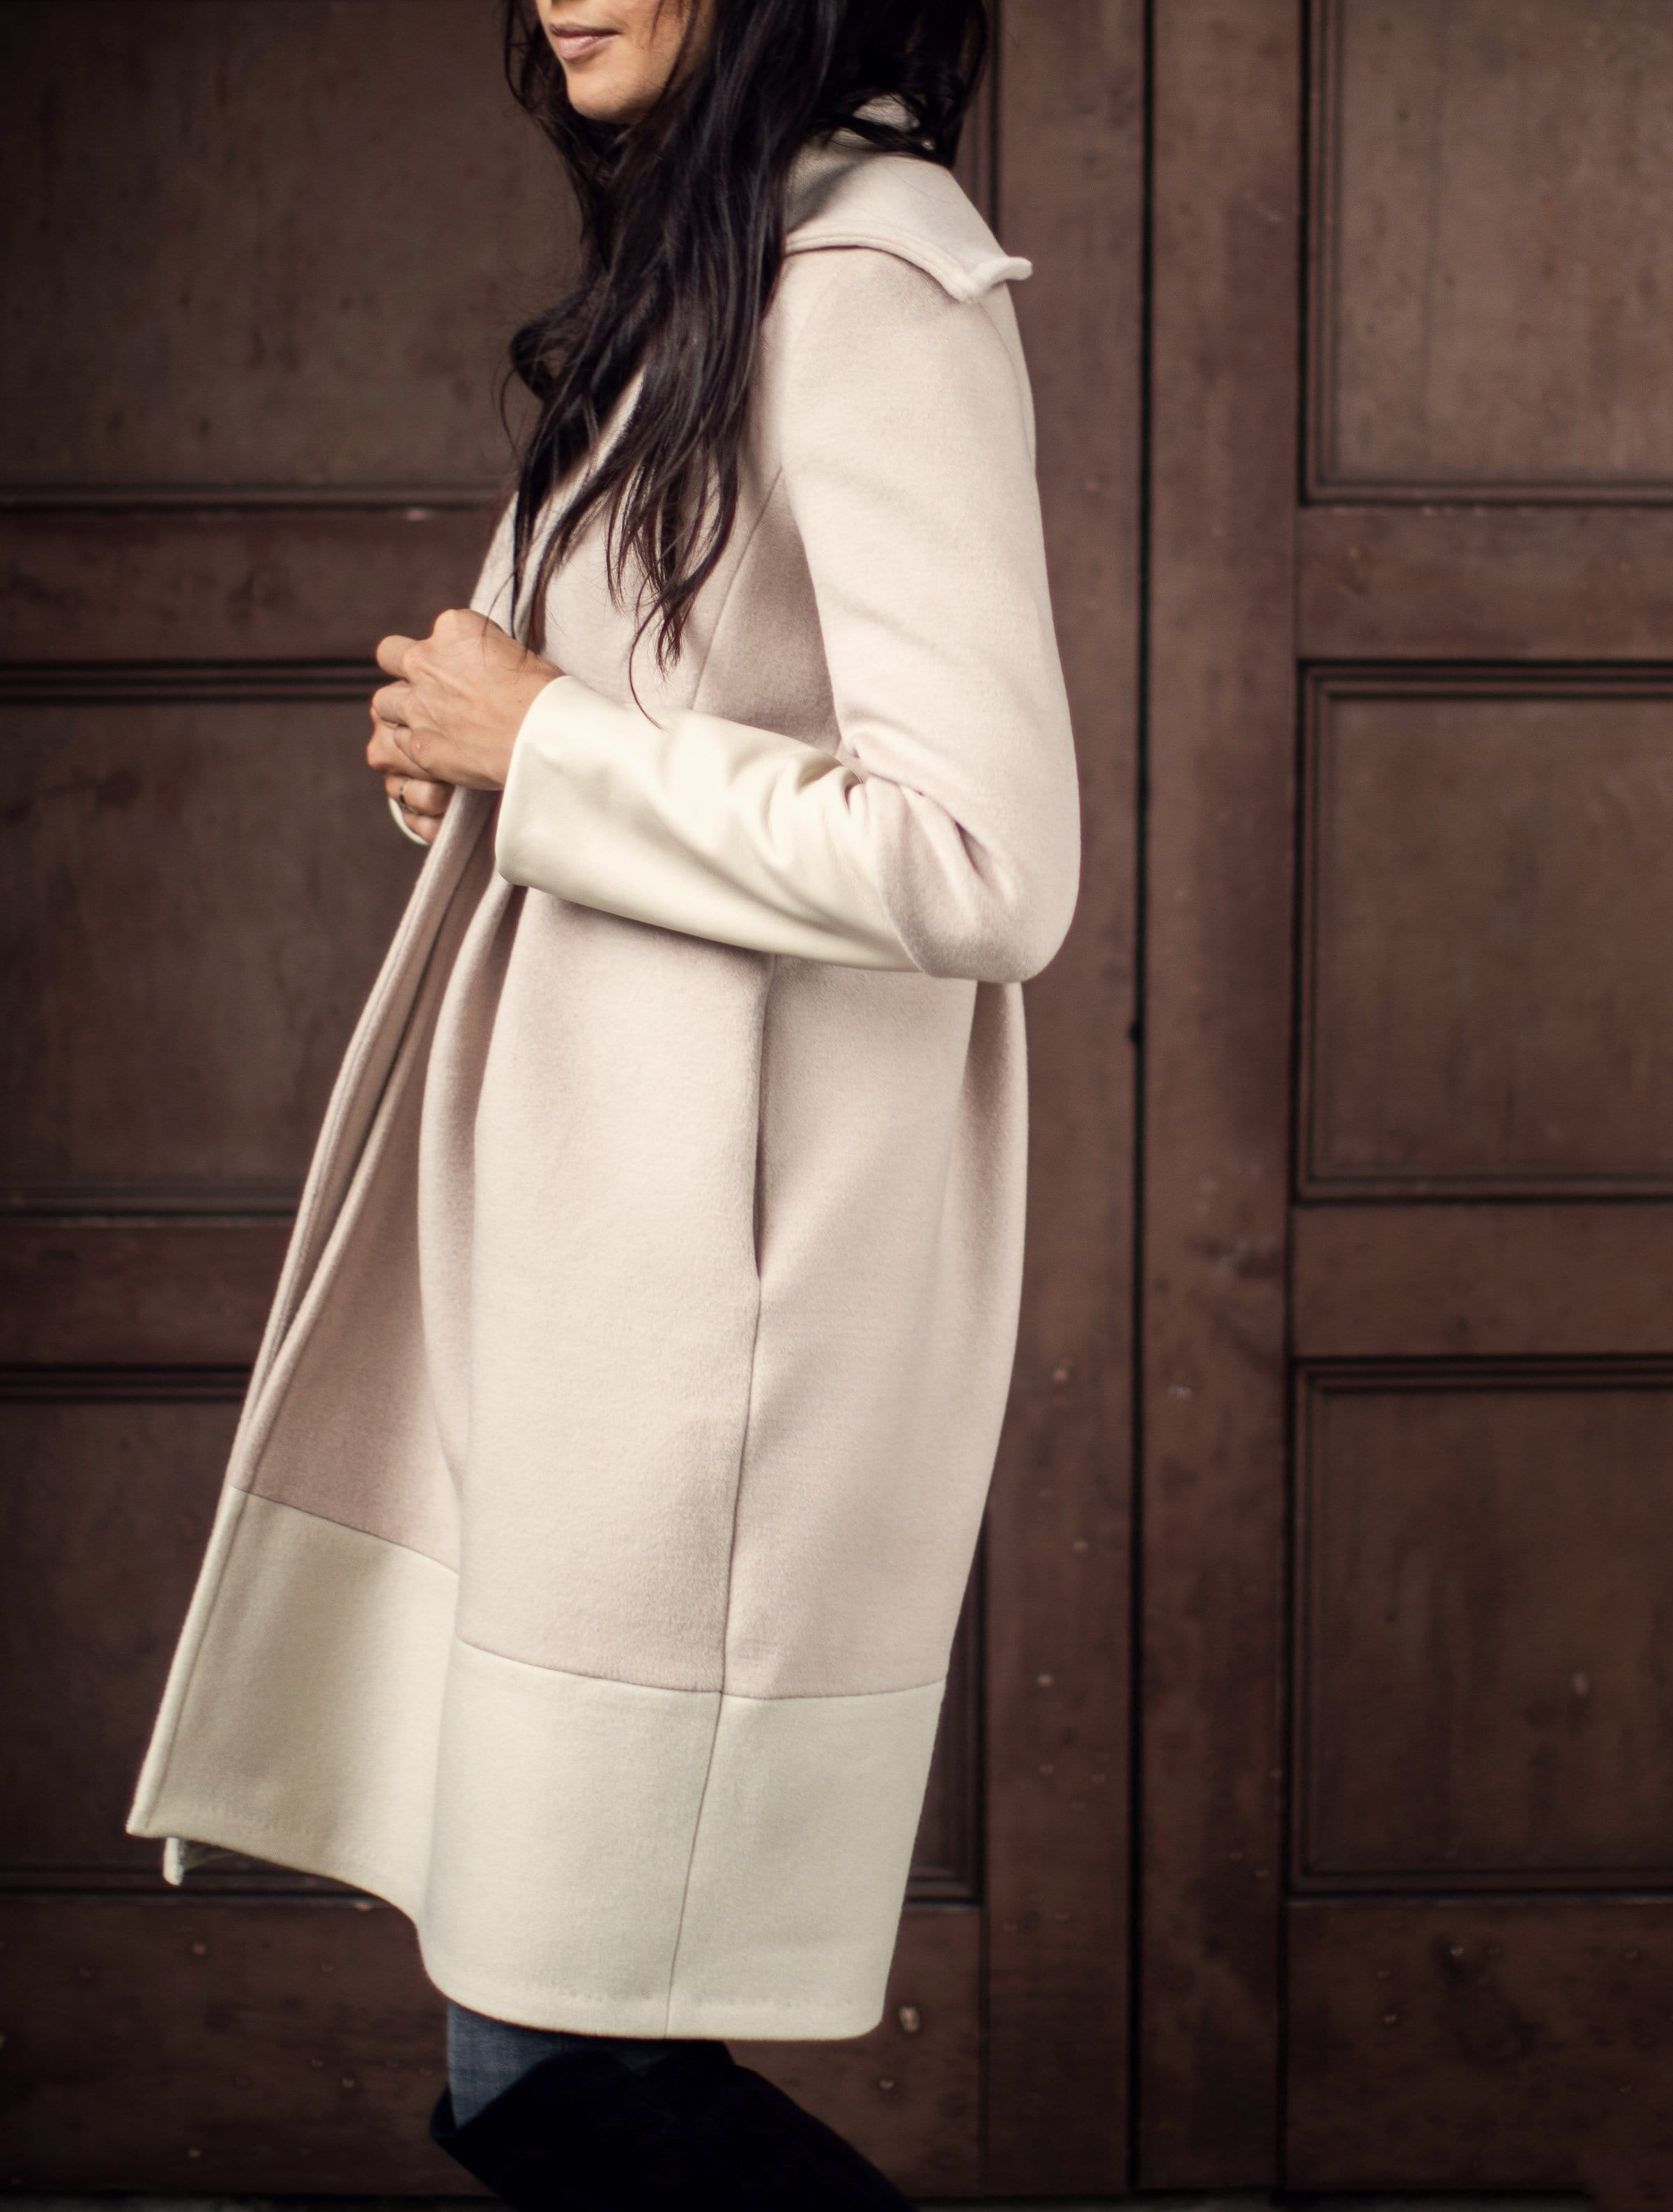 best champagne white wool cashmere leather wide collar custom coat jacket color block anagrassia luxury designer meghan markle kate middleton harrods bergdorf goodman barneys stuart weistzman high black boots aspen